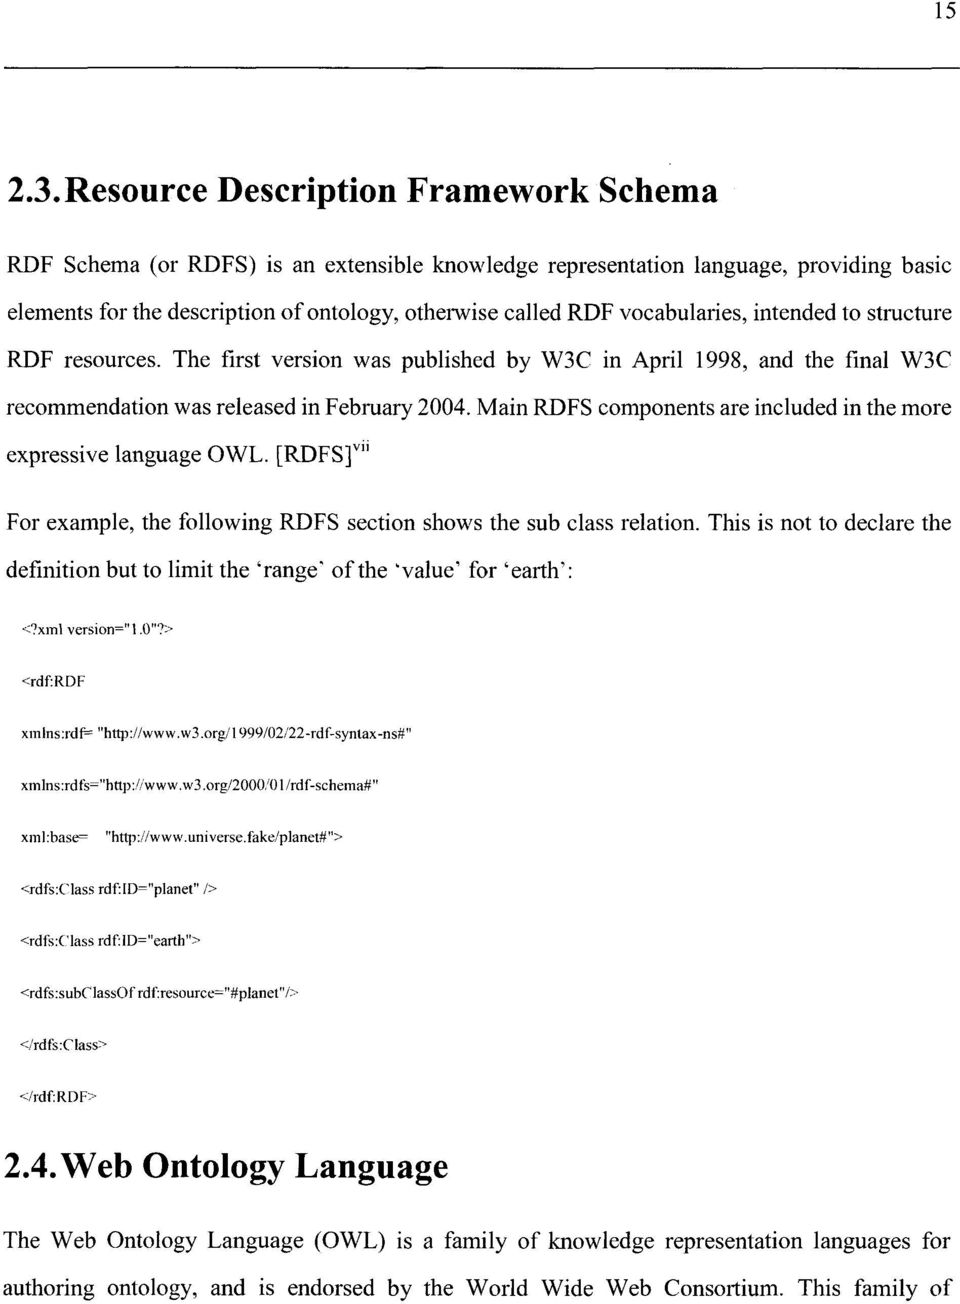 vocabularies, intended to structure RDF resources. The first version was published by W3C in April 1998, and the final W3C recommendation was released in February 2004.